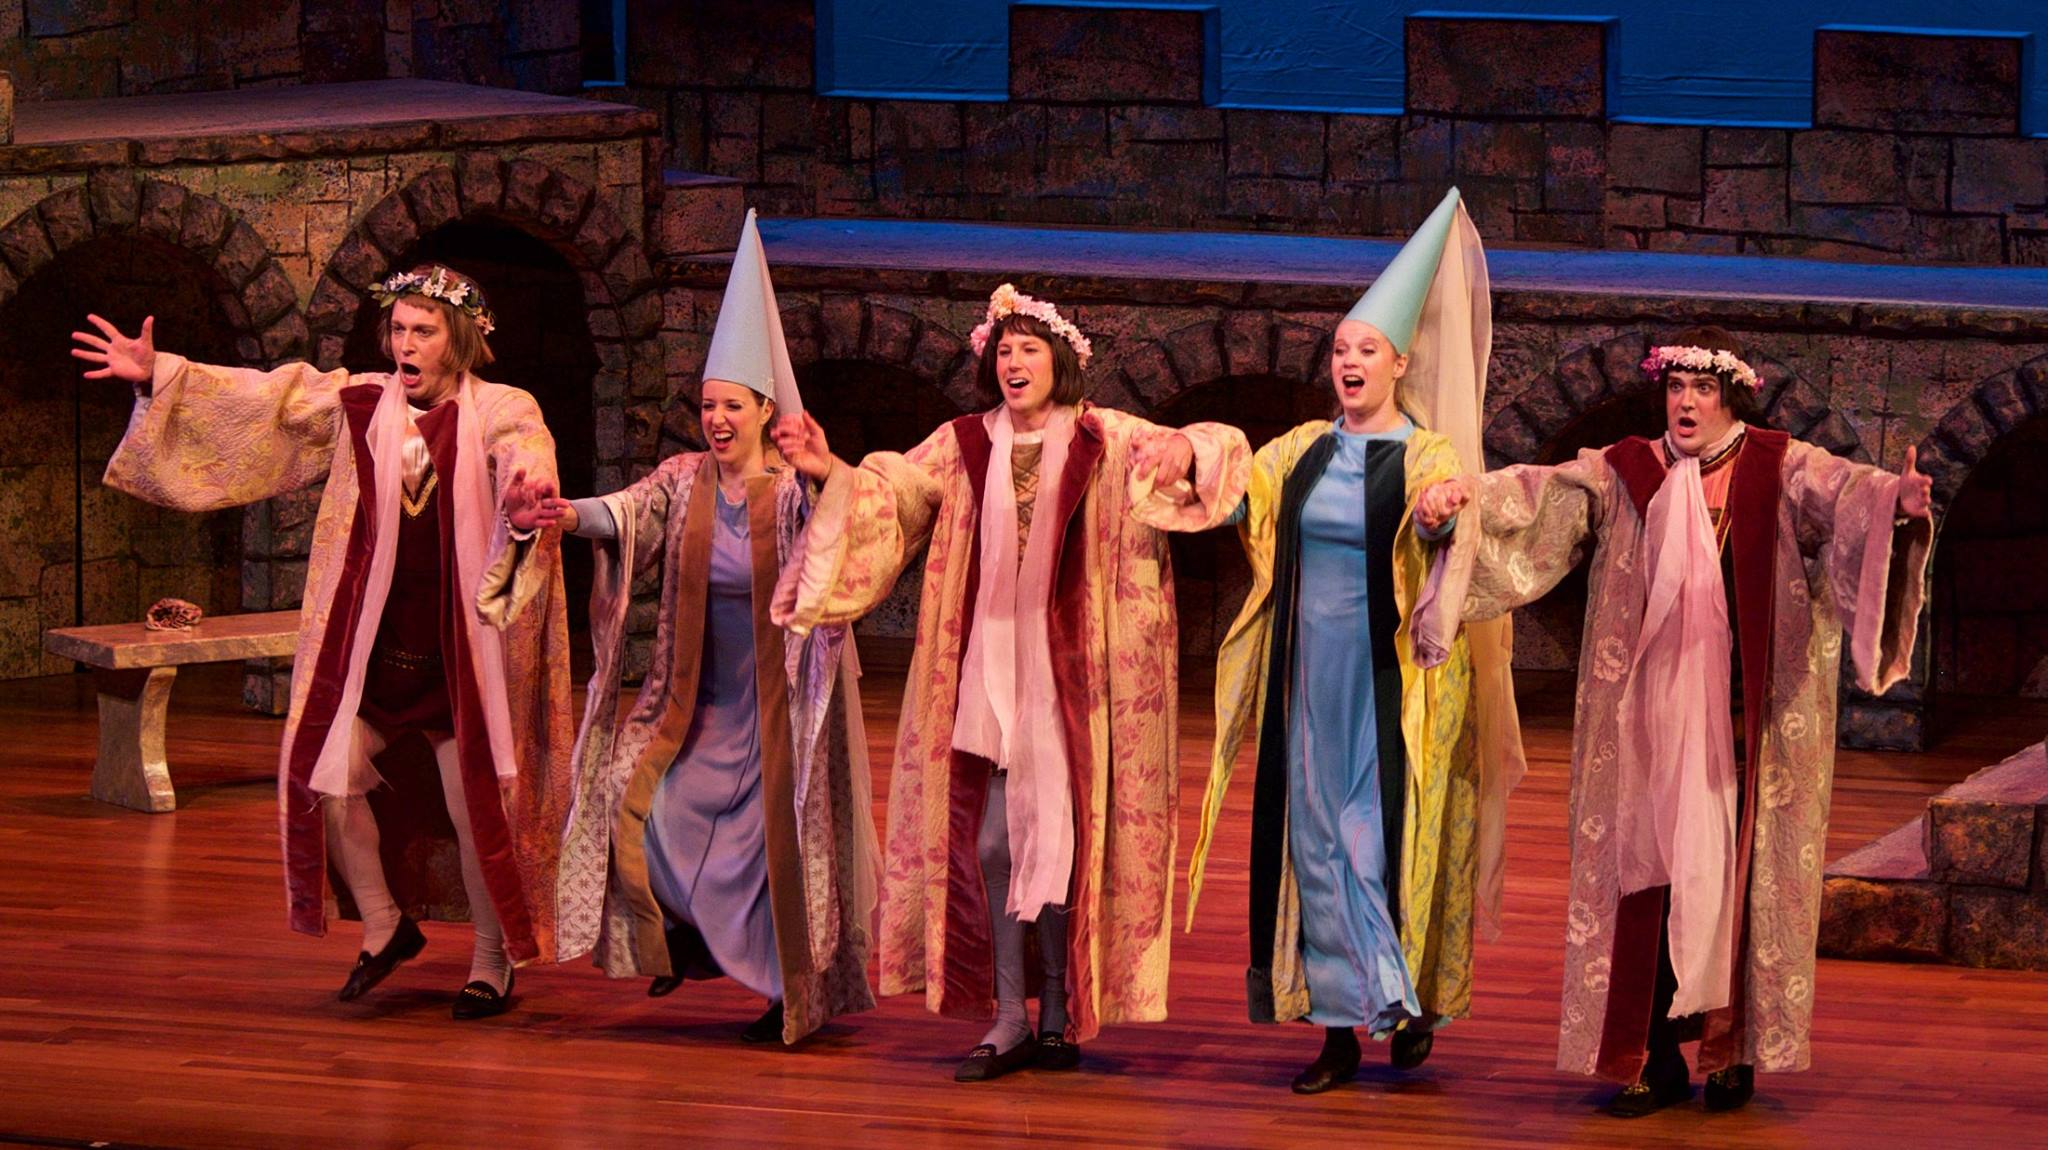 Melissa ( Princess Ida ) at Skirball Center for the Performing Arts, with Matthew Wages, Cameron Smith, Sarah Hutchison, and Daniel Greenwood (L to R) (Credit: William Reynolds)